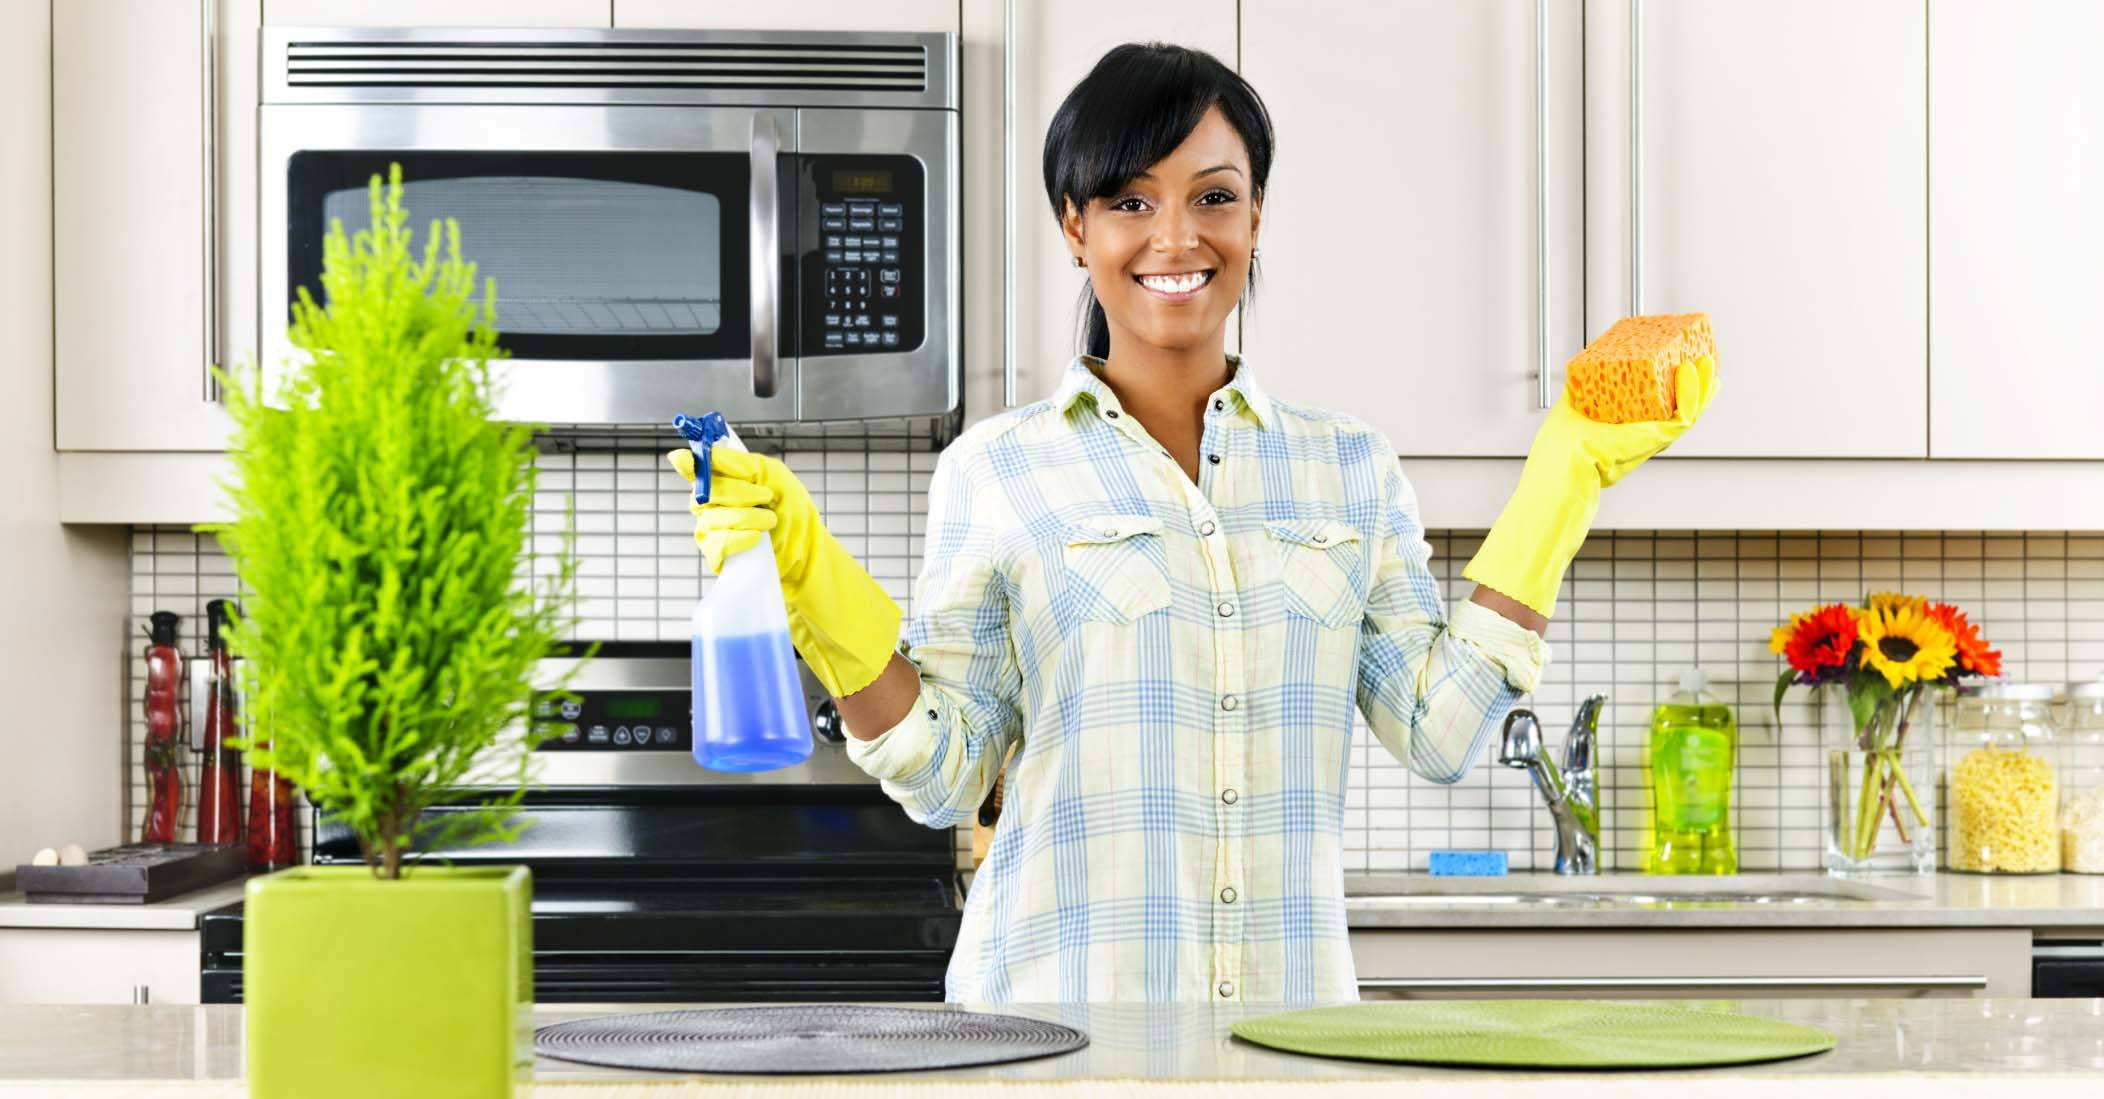 House cleaning jobs in London: 6 HOME CLEANING TIPS AND TRICKS